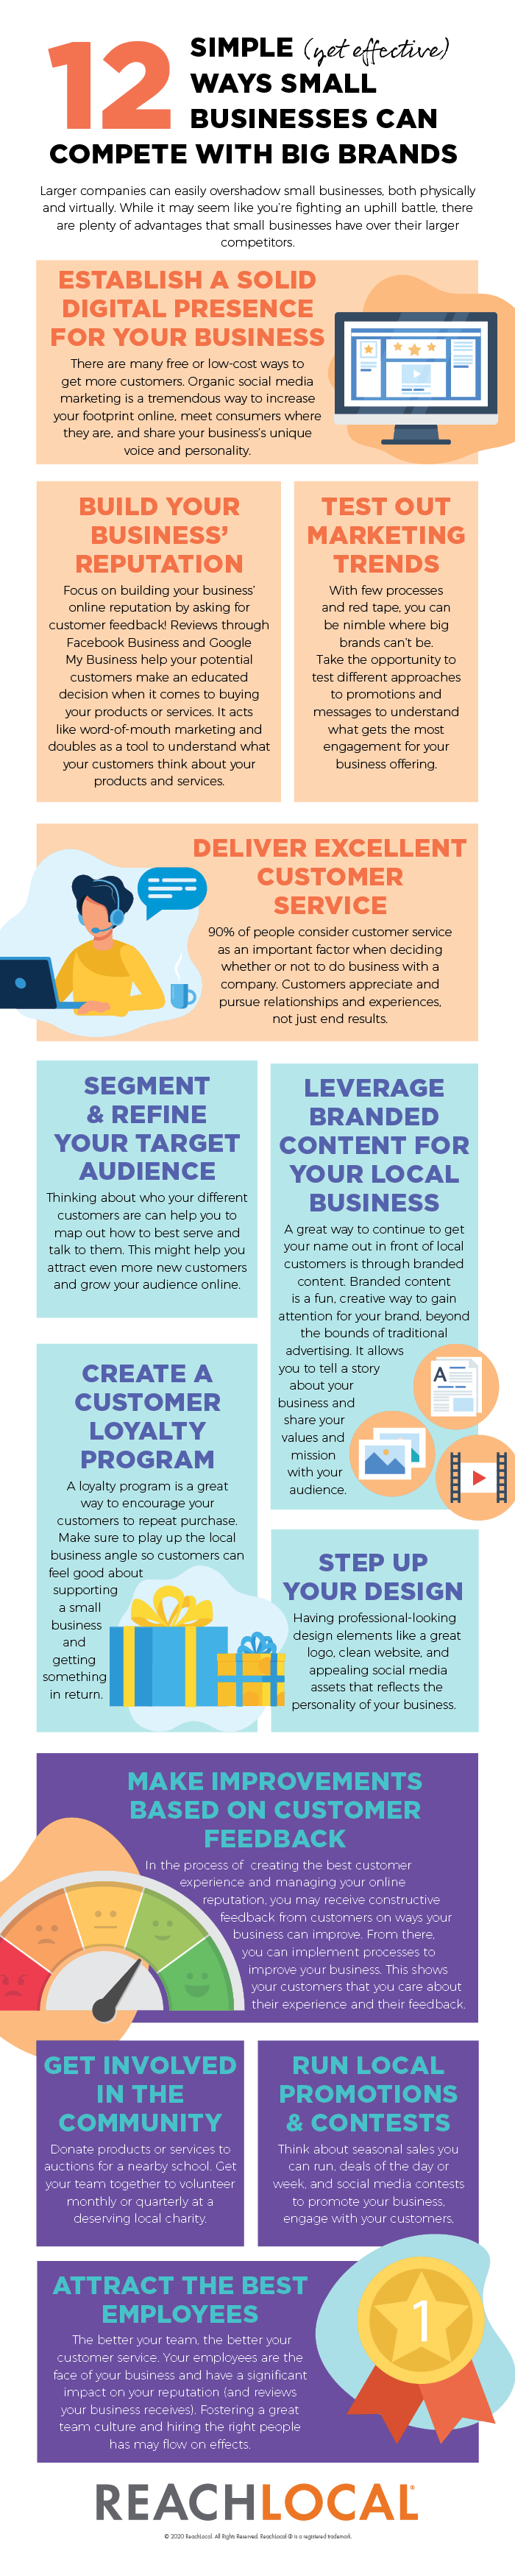 12 ways small businesses can compete with big brands infographic by ReachLocal